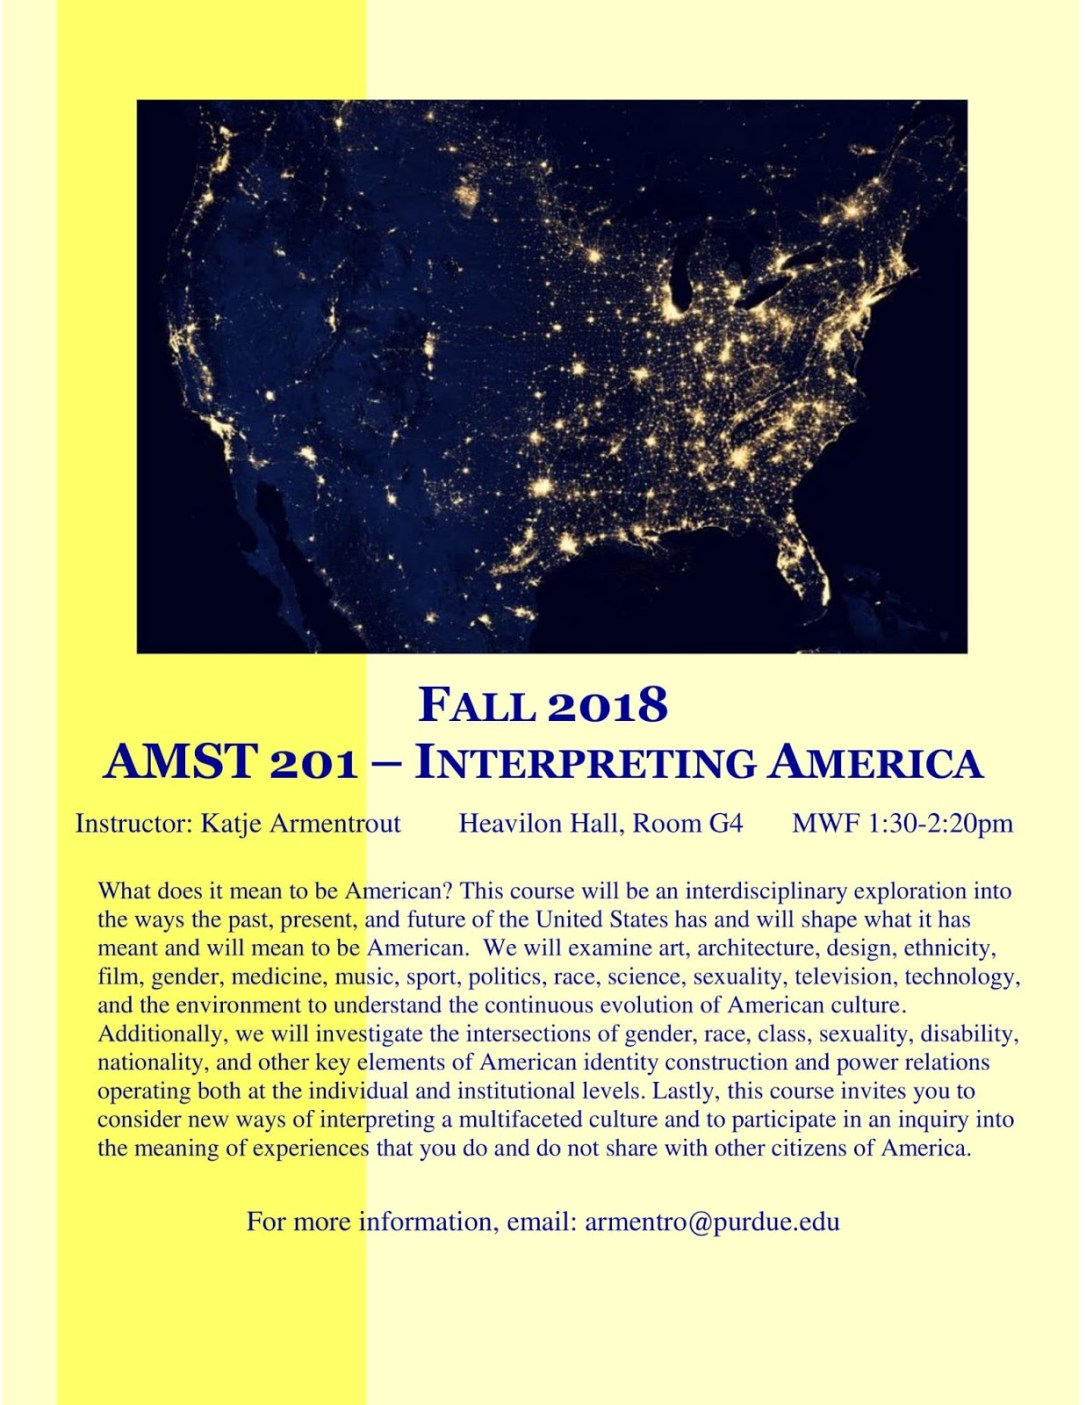 FA 18__AMST 201__Interpreting America__Armentrout-1